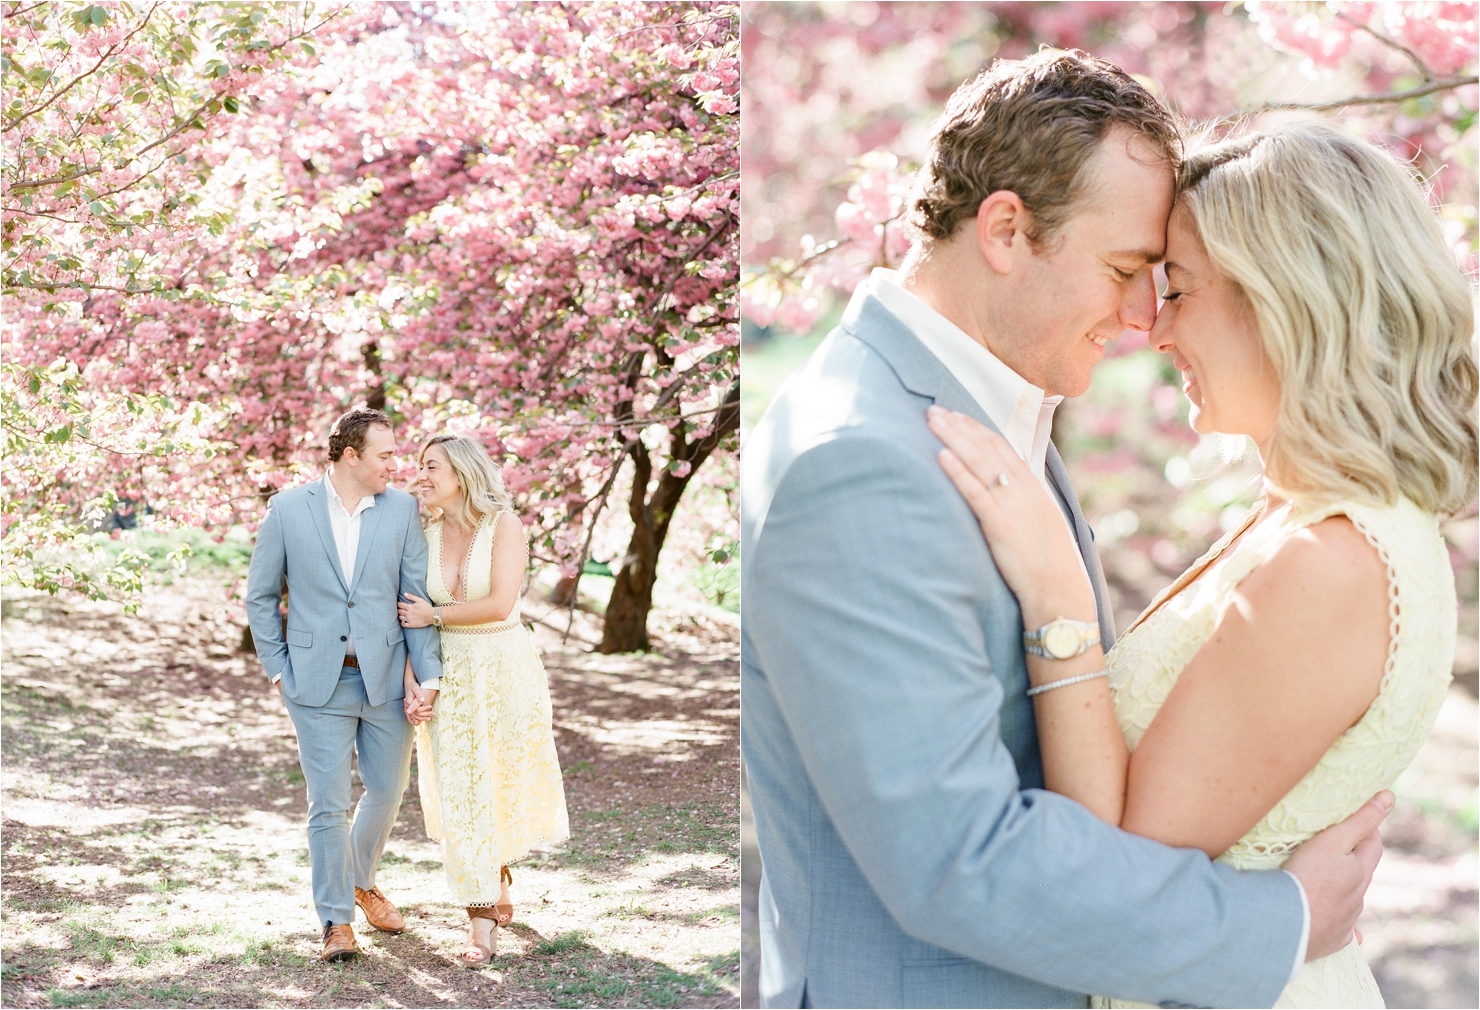 Spring Engagement Session in Central Park